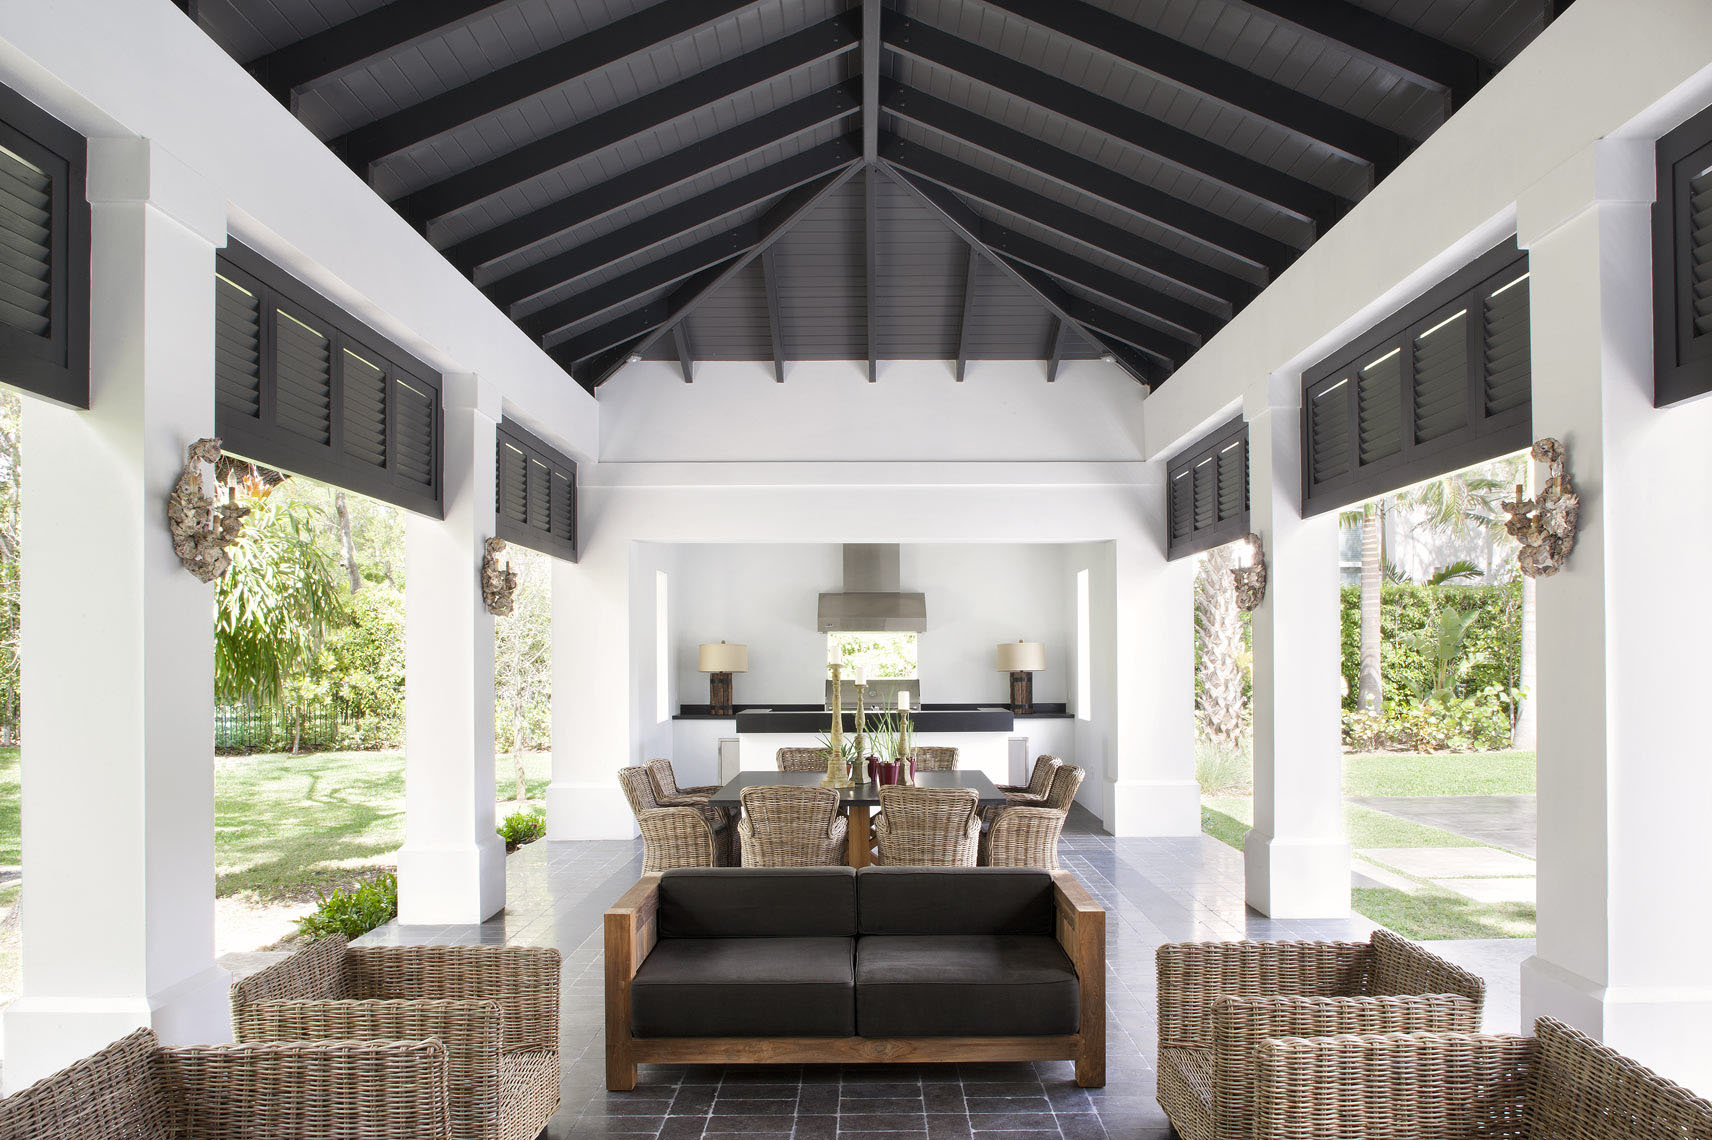 Neoclassical-Style Miami Home With Pool Pavilion | iDesignArch ...